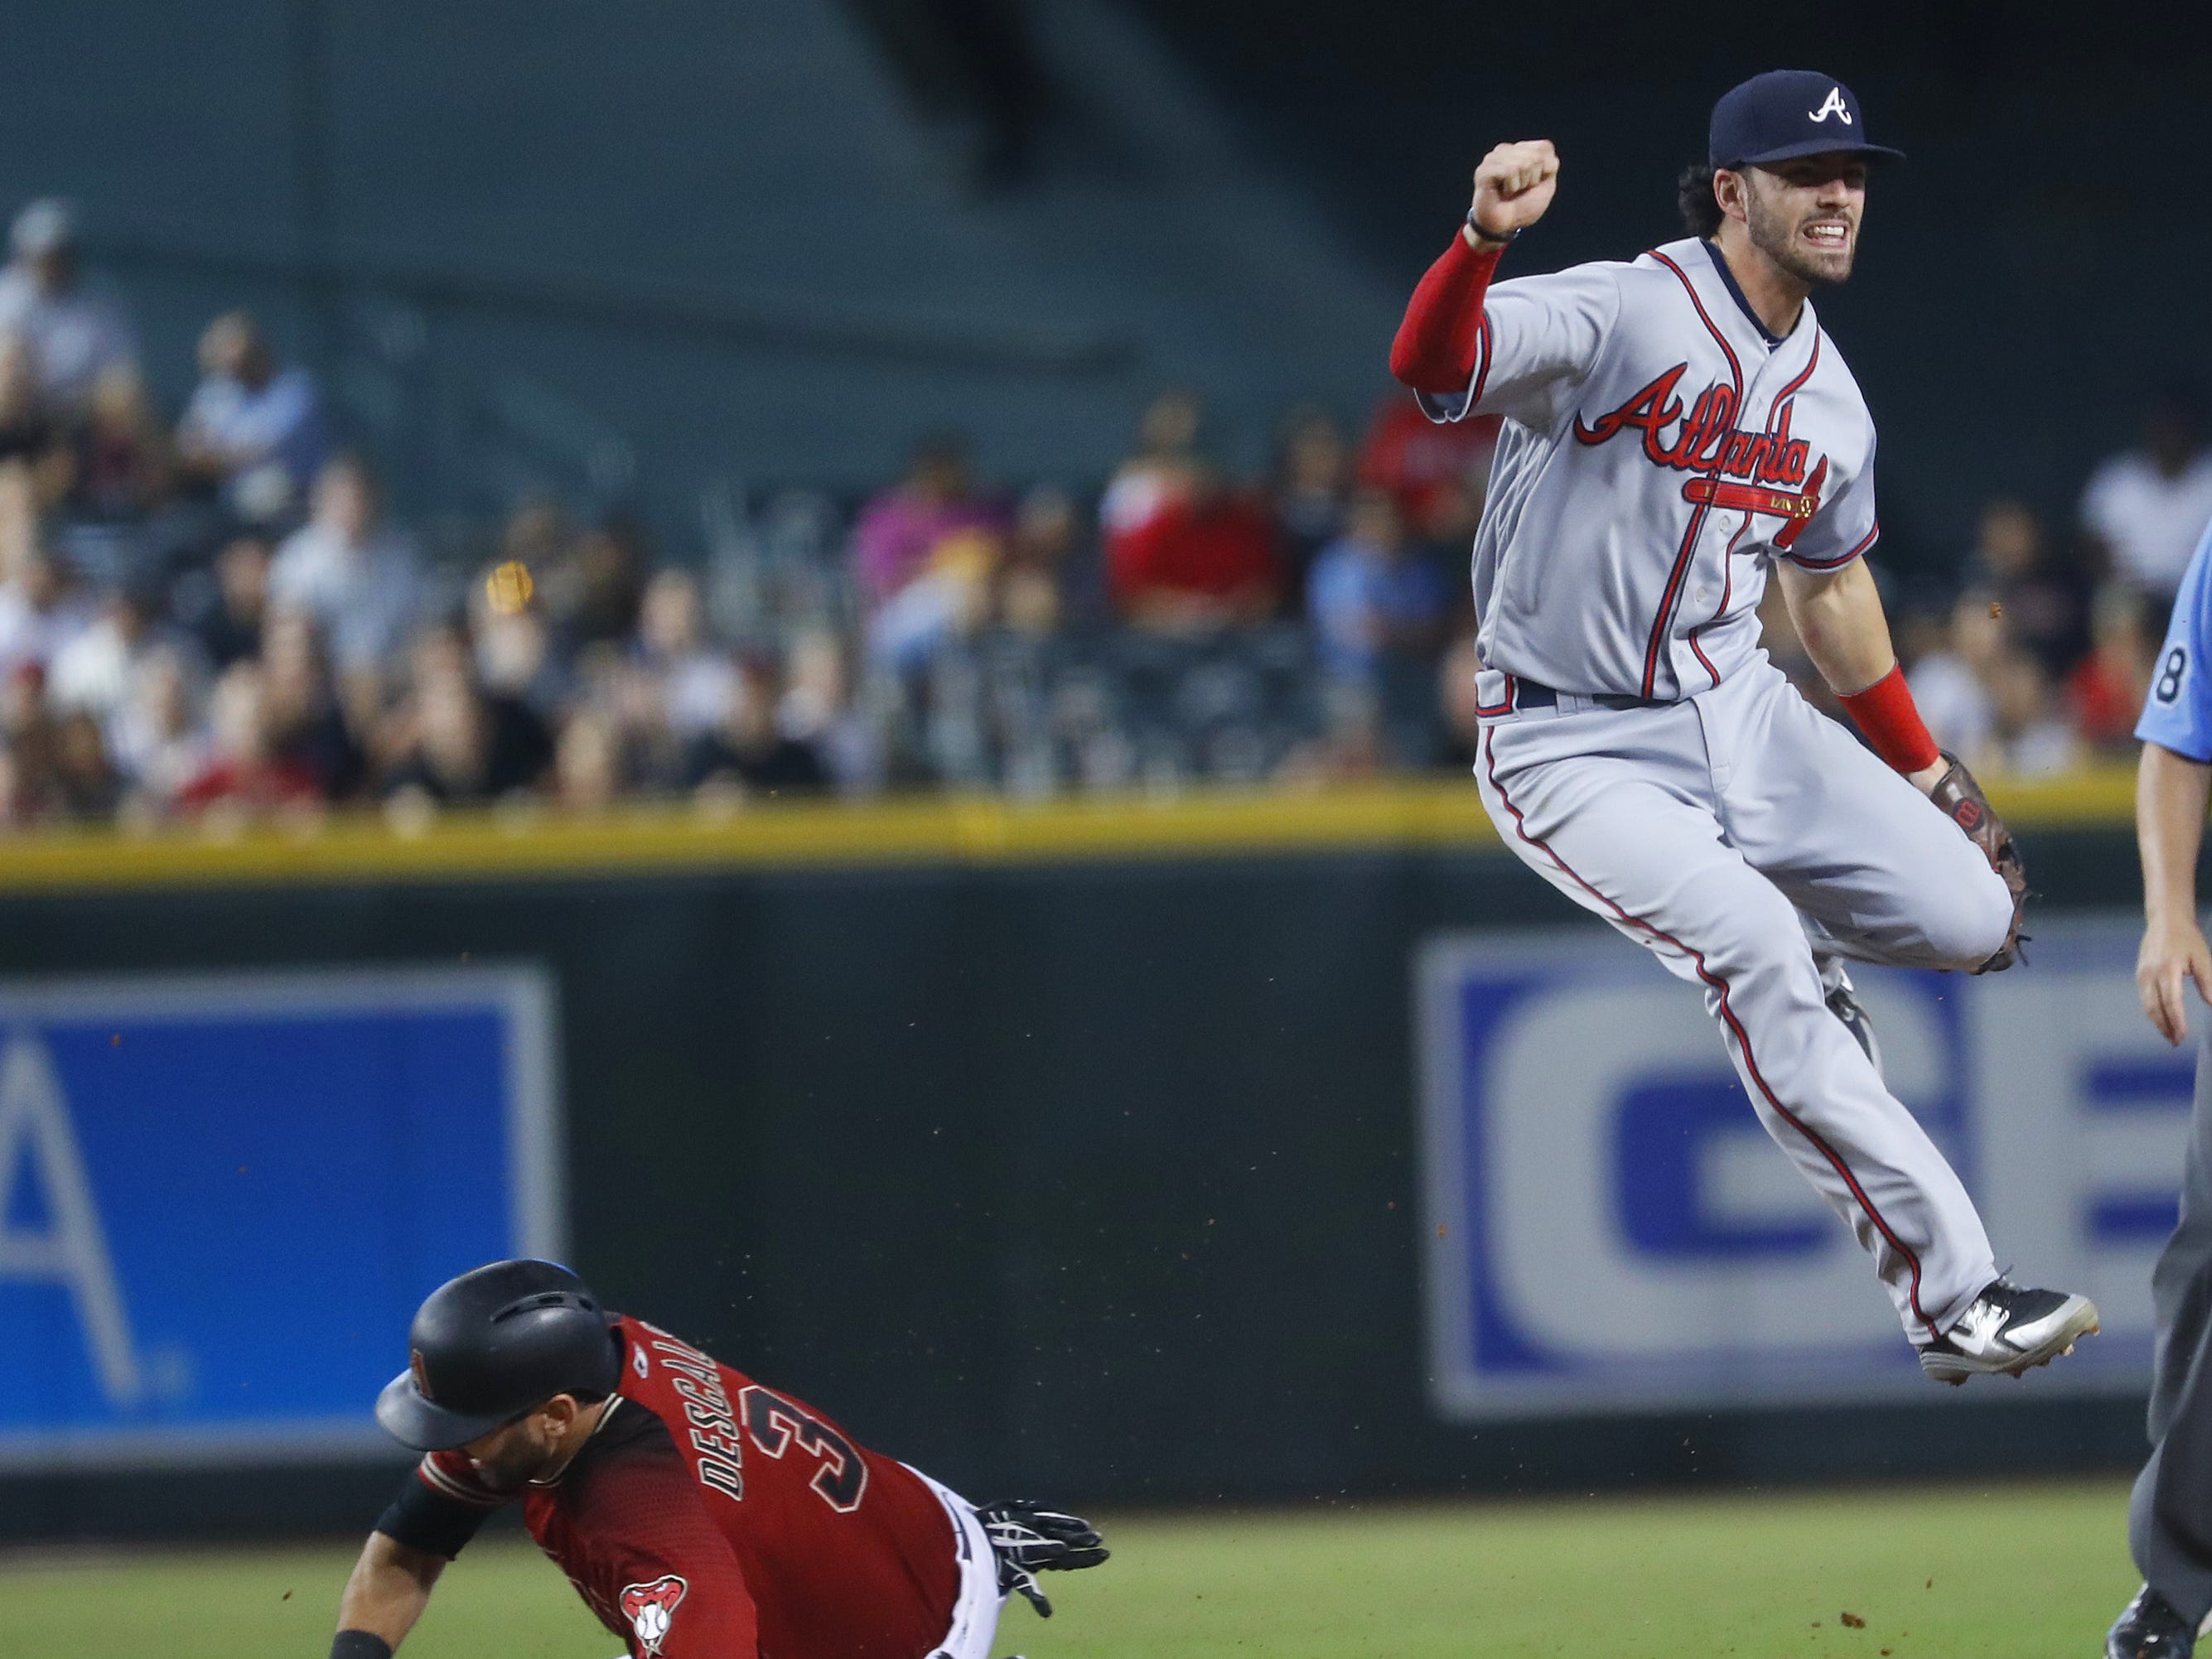 Braves Dansby Swanson (7) leaps over Diamondbacks Daniel Descalso (3) on a slide at second base during the sixth inning at Chase Field in Phoenix, Ariz. on Sept. 9, 2018.